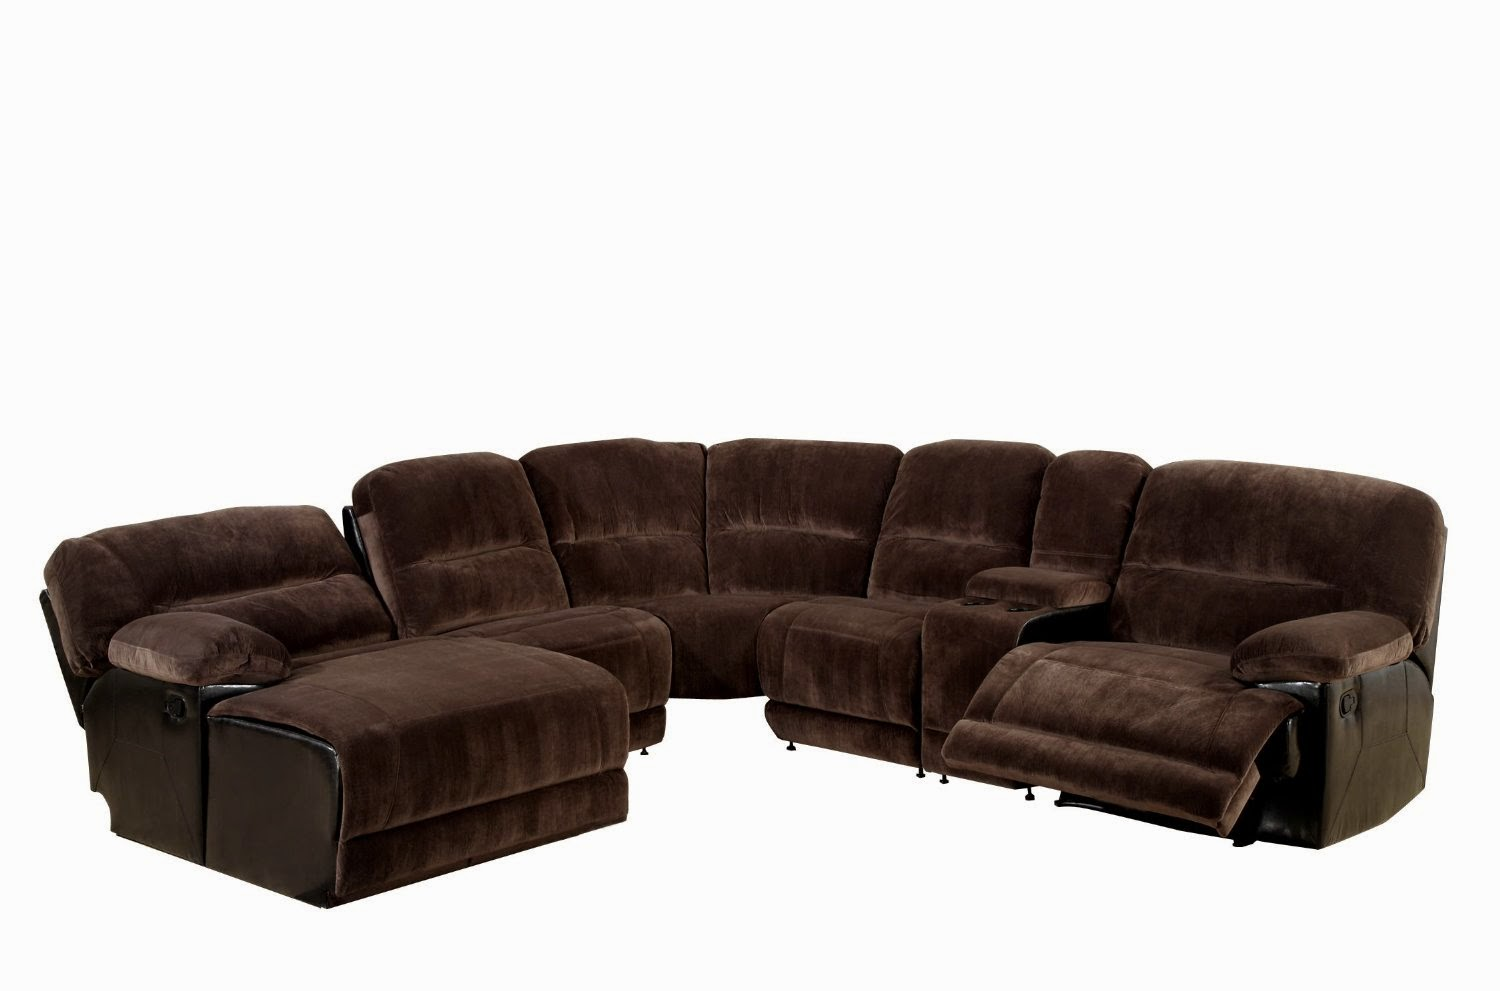 Reclining sofas for sale cheap saddle microfiber for Furniture sofa sale